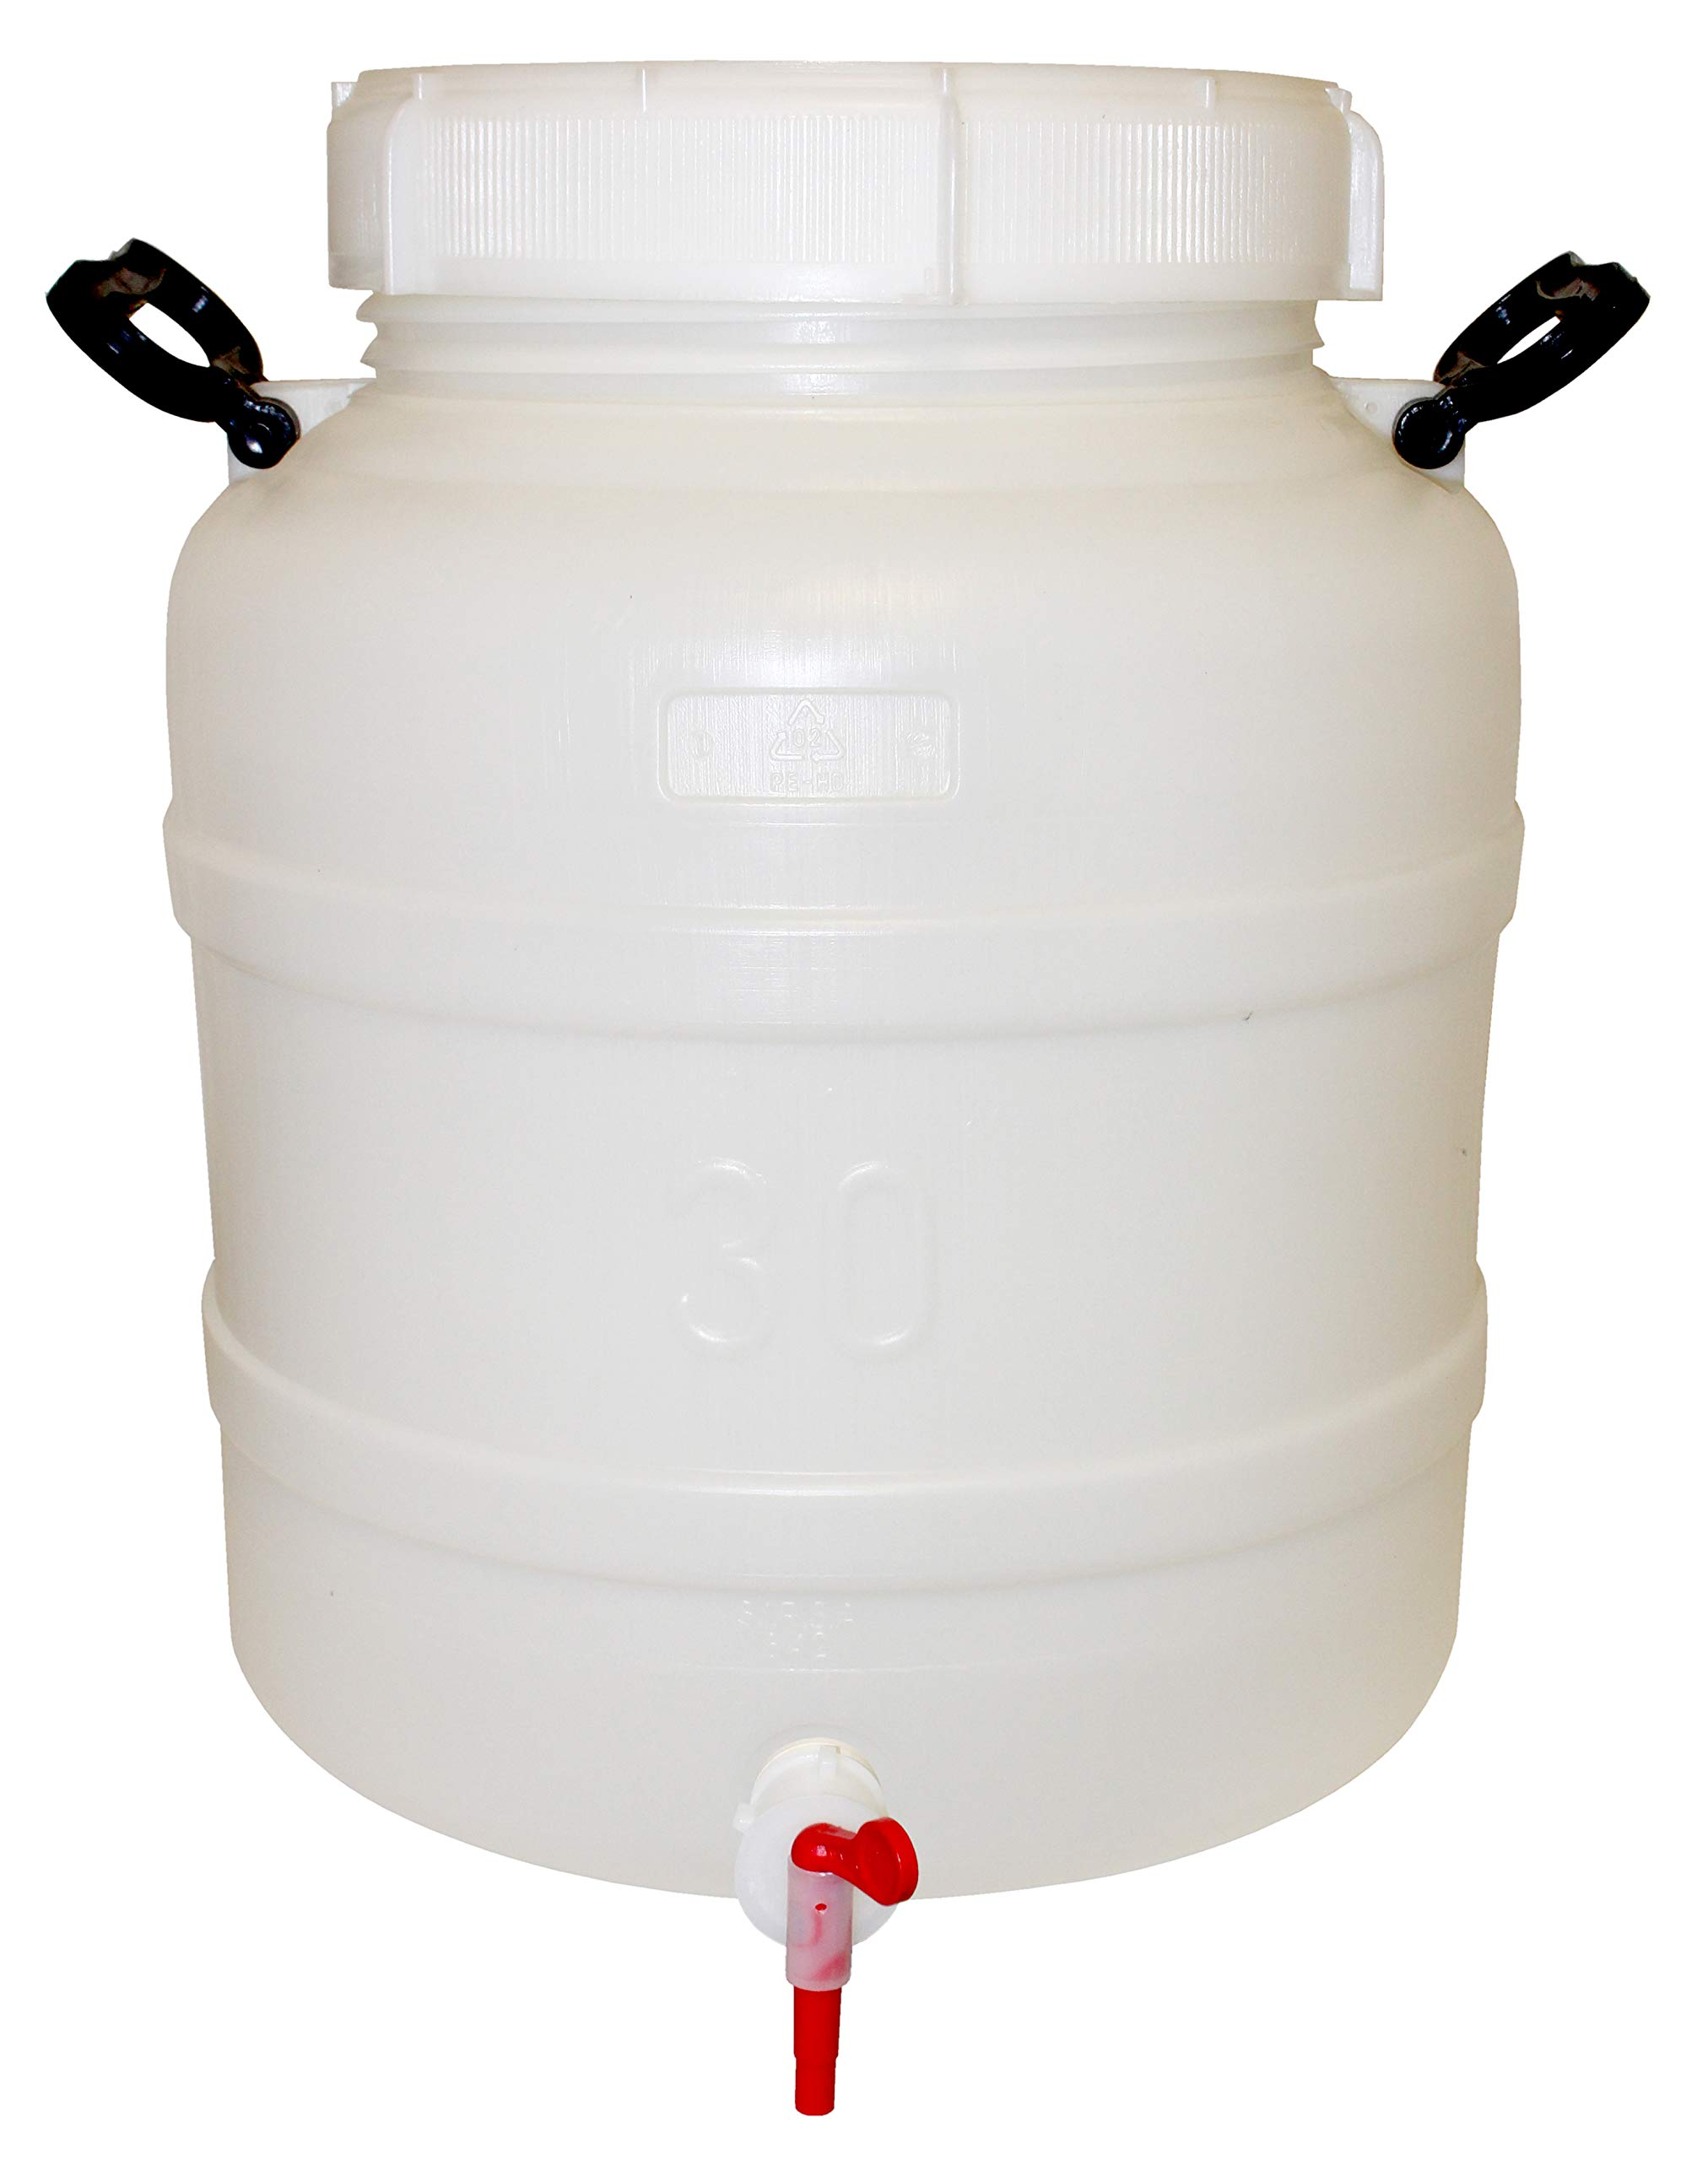 Home Brew Ohio Jungle Juice Party Container/Dispenser Portable 30 Liter (7.9 Gallons) With Spigot by Home Brew Ohio